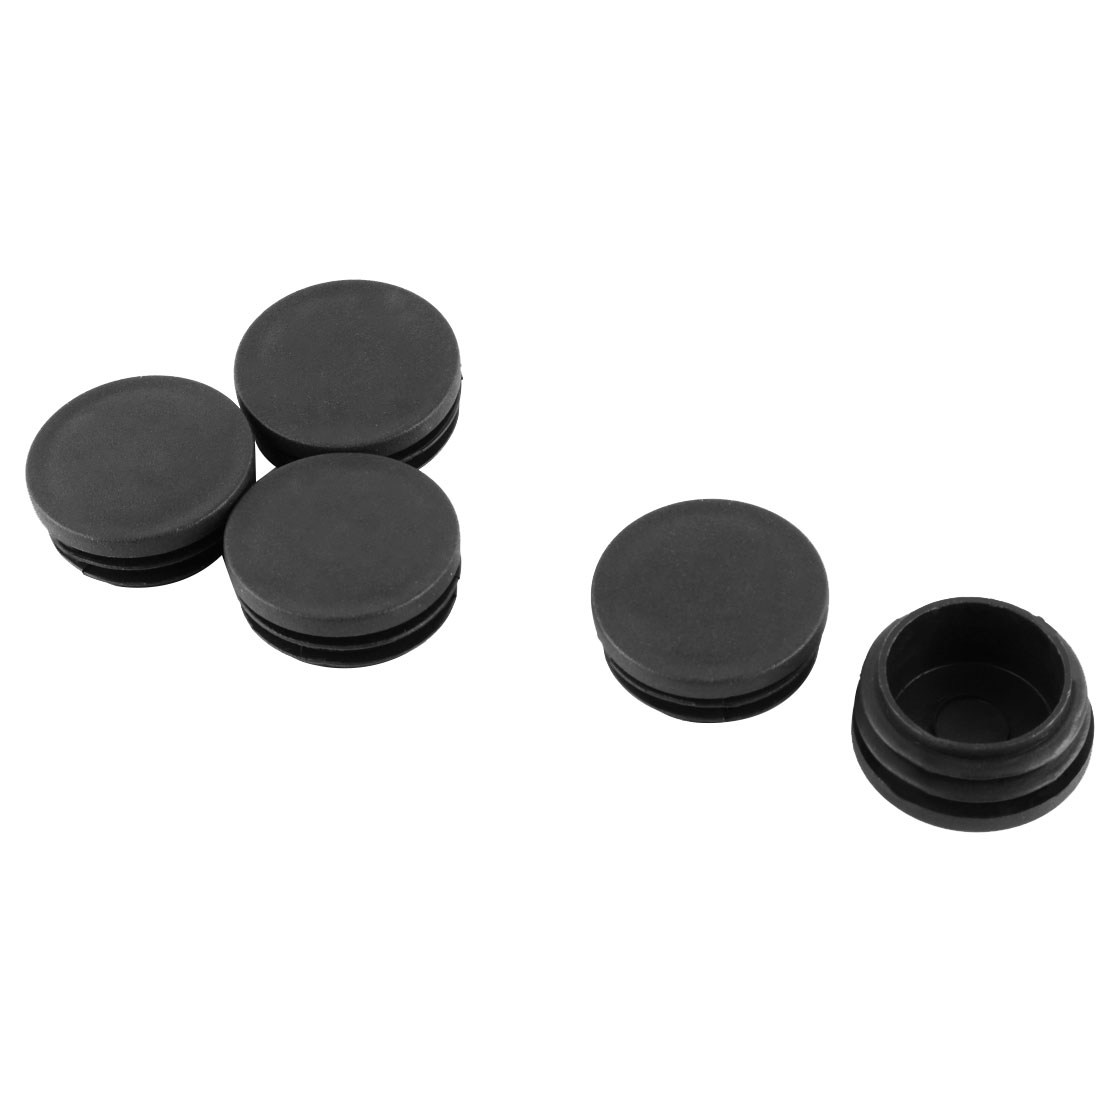 Chair Table Legs 38mm Diameter Plastic Cap Round Ribbed Tube Insert Black 5 Pcs